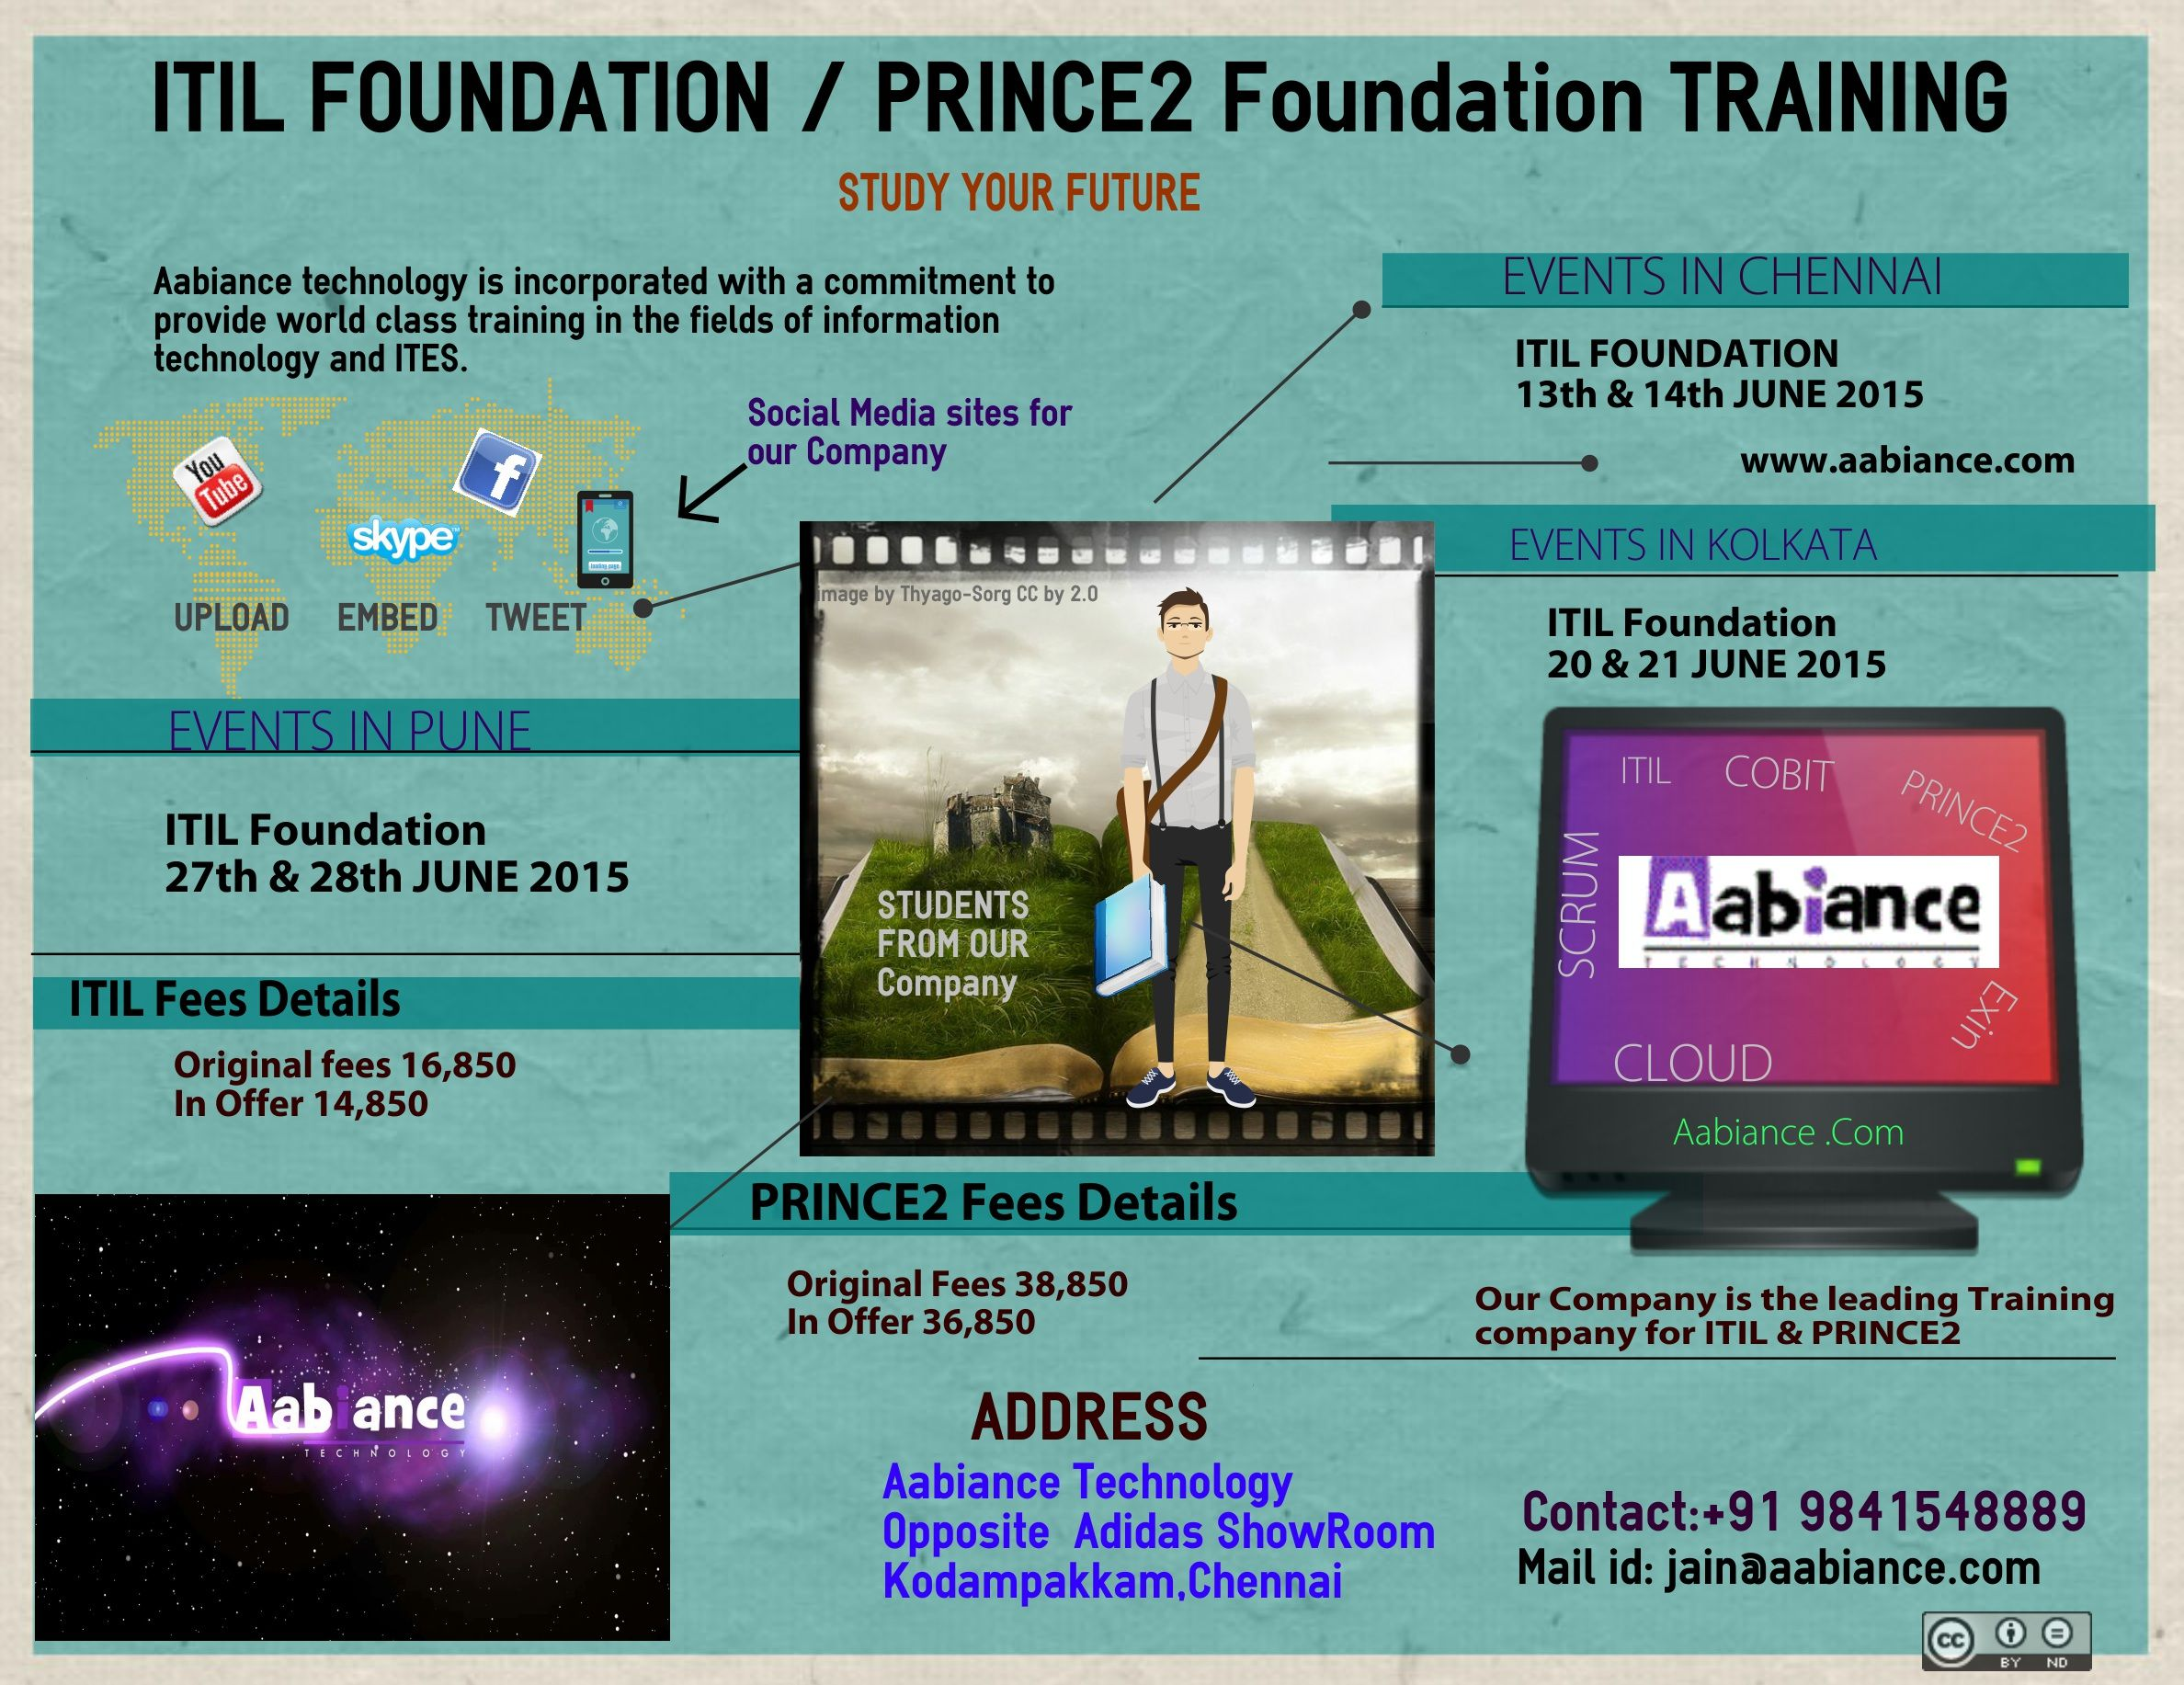 Events For Itil Prince2 Foundation Training And What Are The Fees